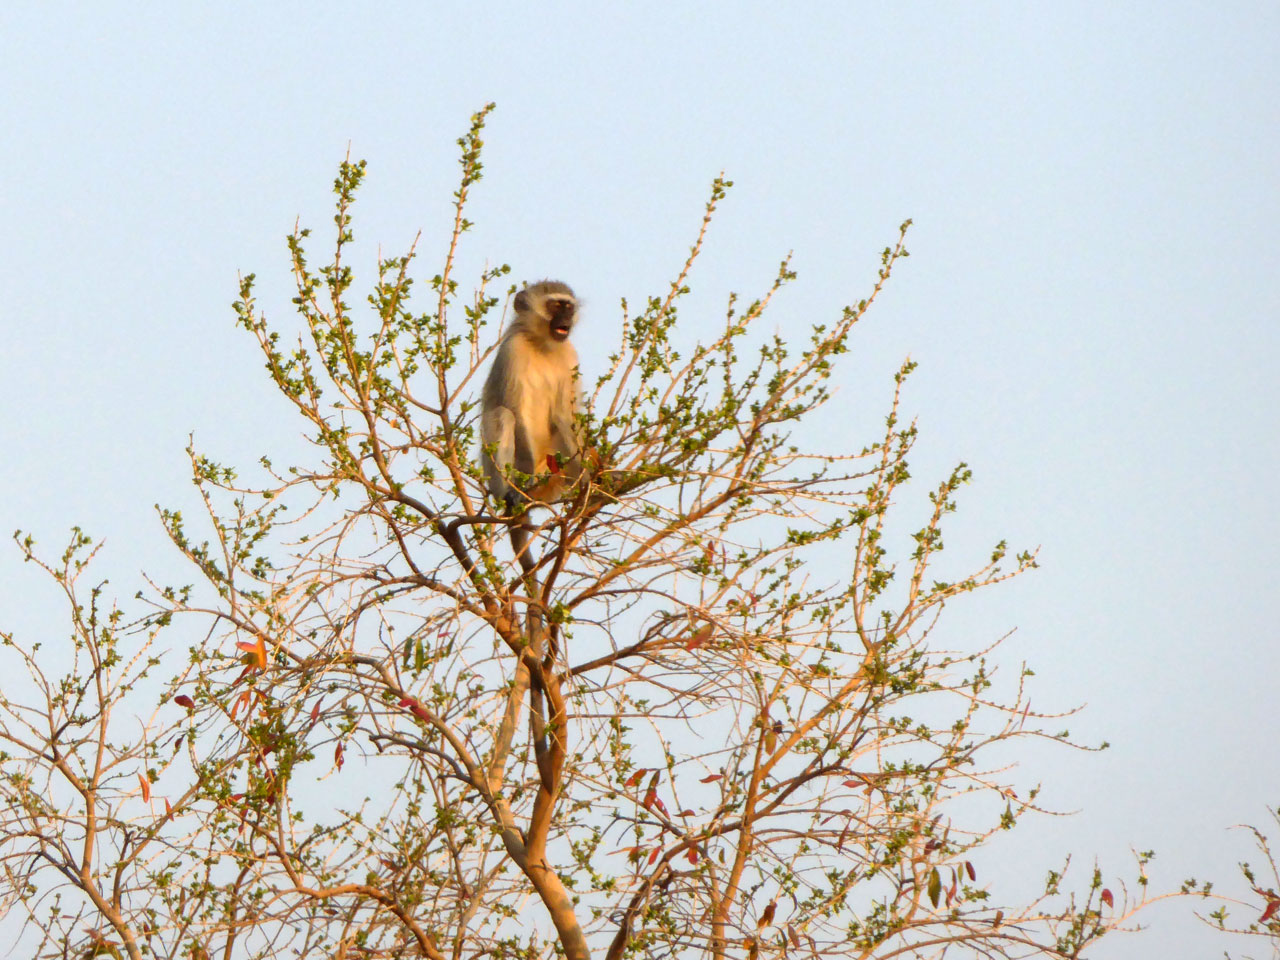 Vervet monkey in Madikwe Game Reserve, South Africa